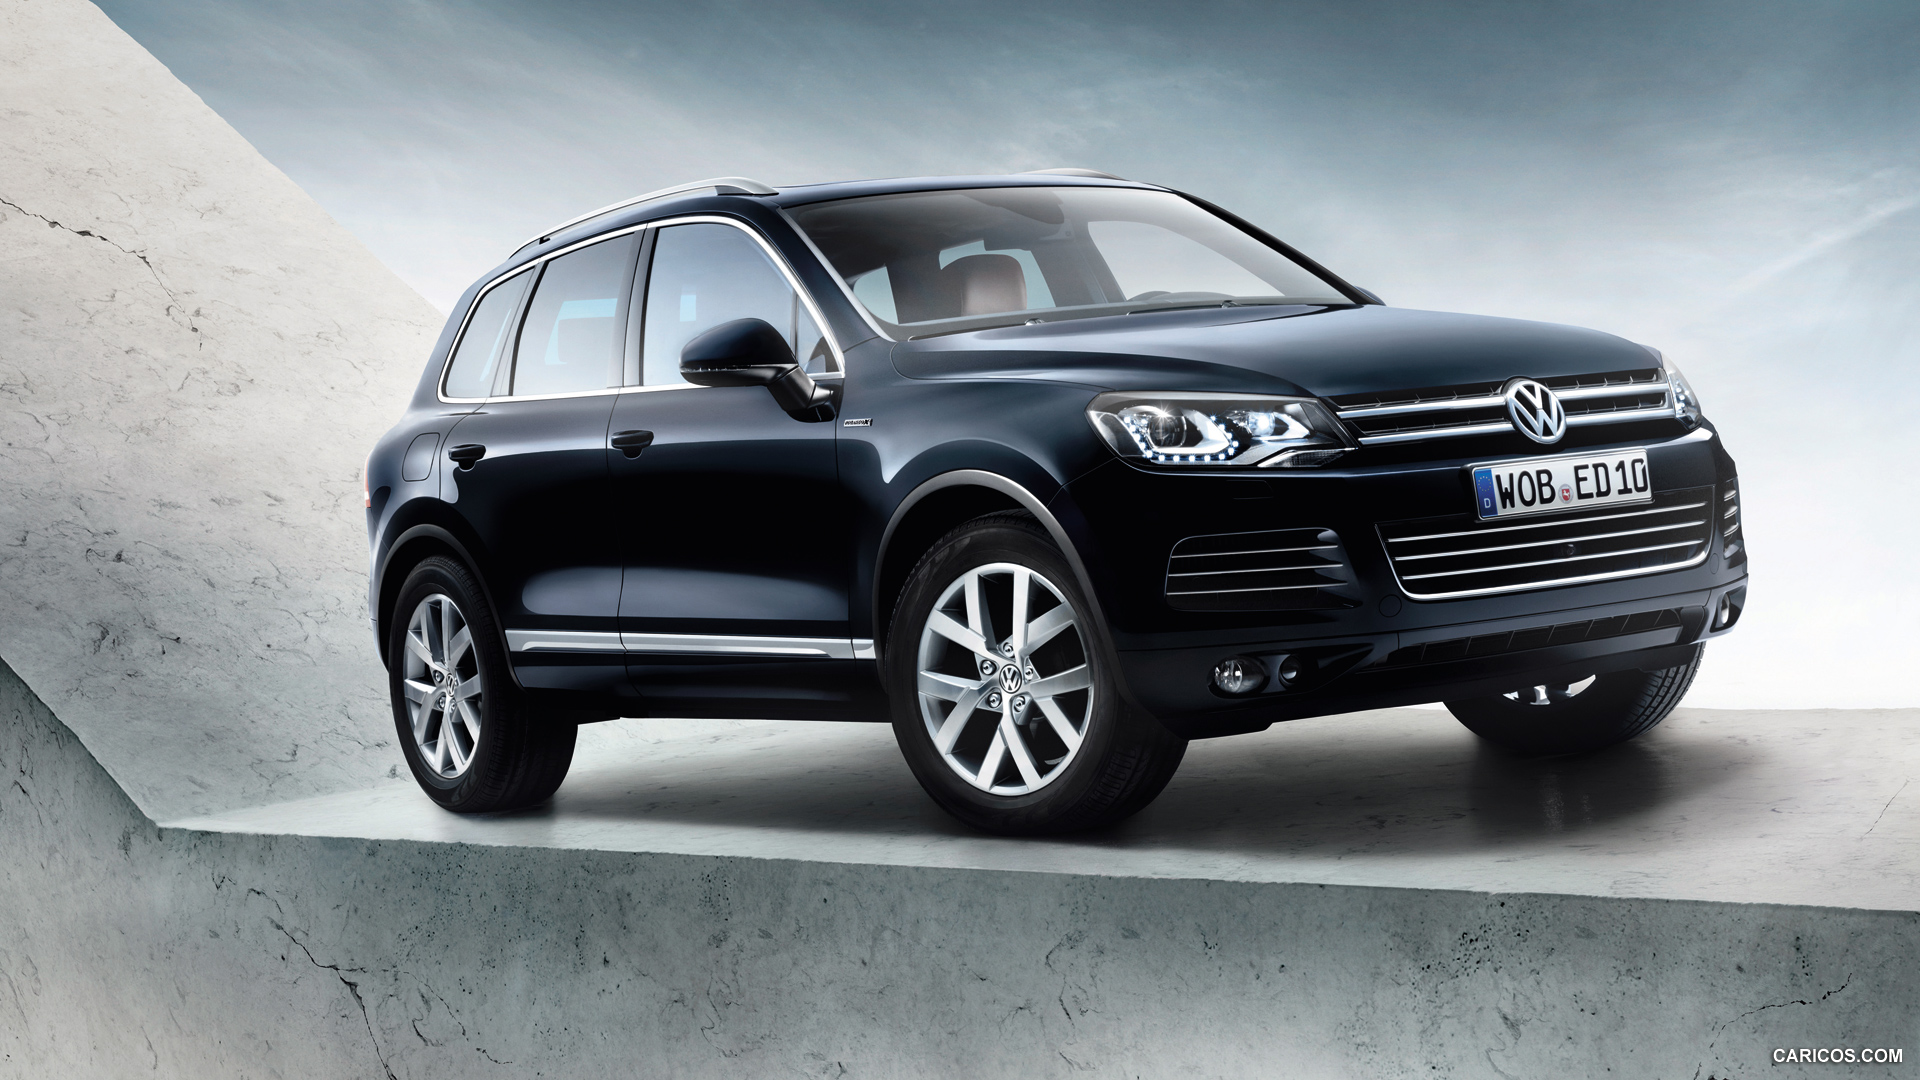 2013 Volkswagen Touareg Information And Photos Zombiedrive Ford Bank 2 Sensor 1 Location 12